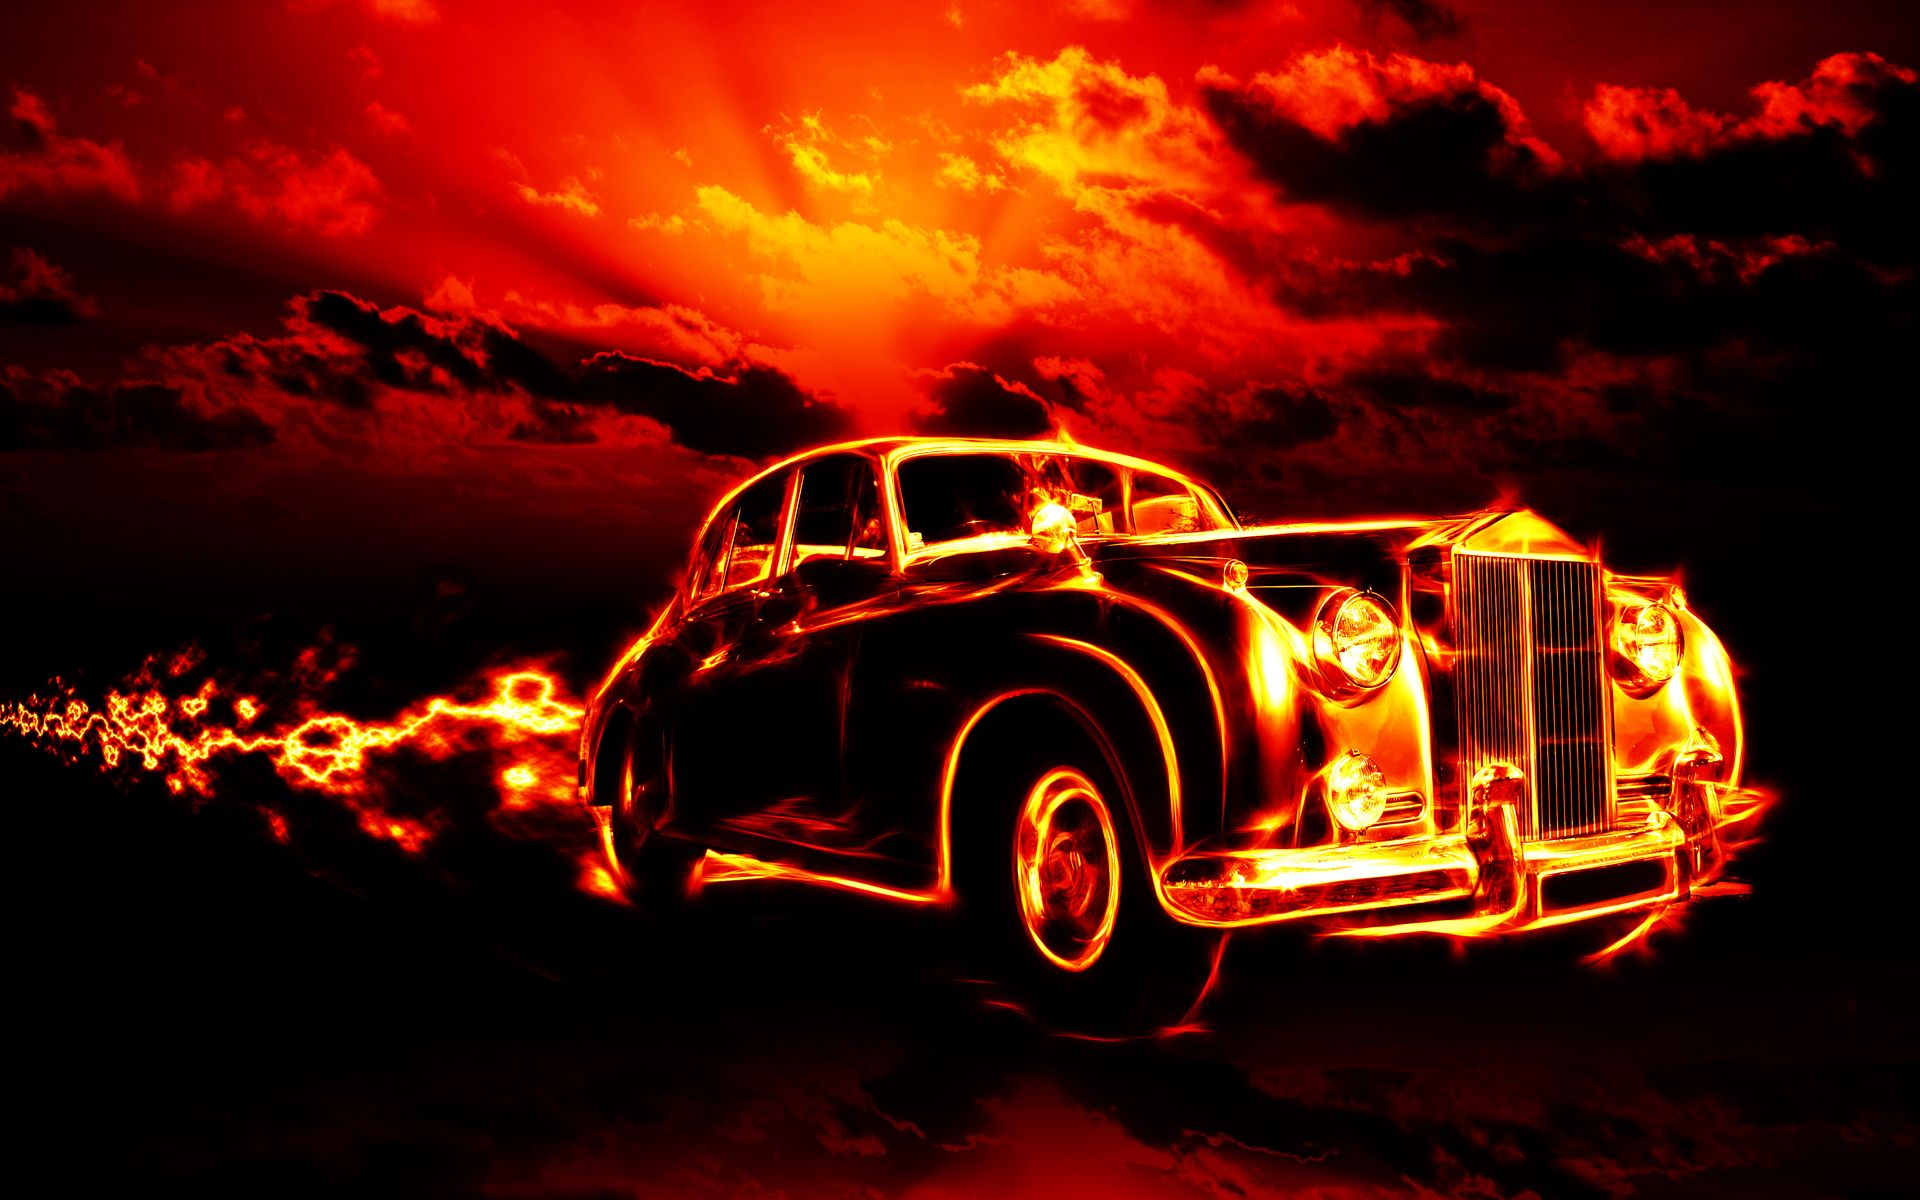 Cool Pics Of Fire Amazing Fire Car Wallpaper Download Free - Cool cars on fire